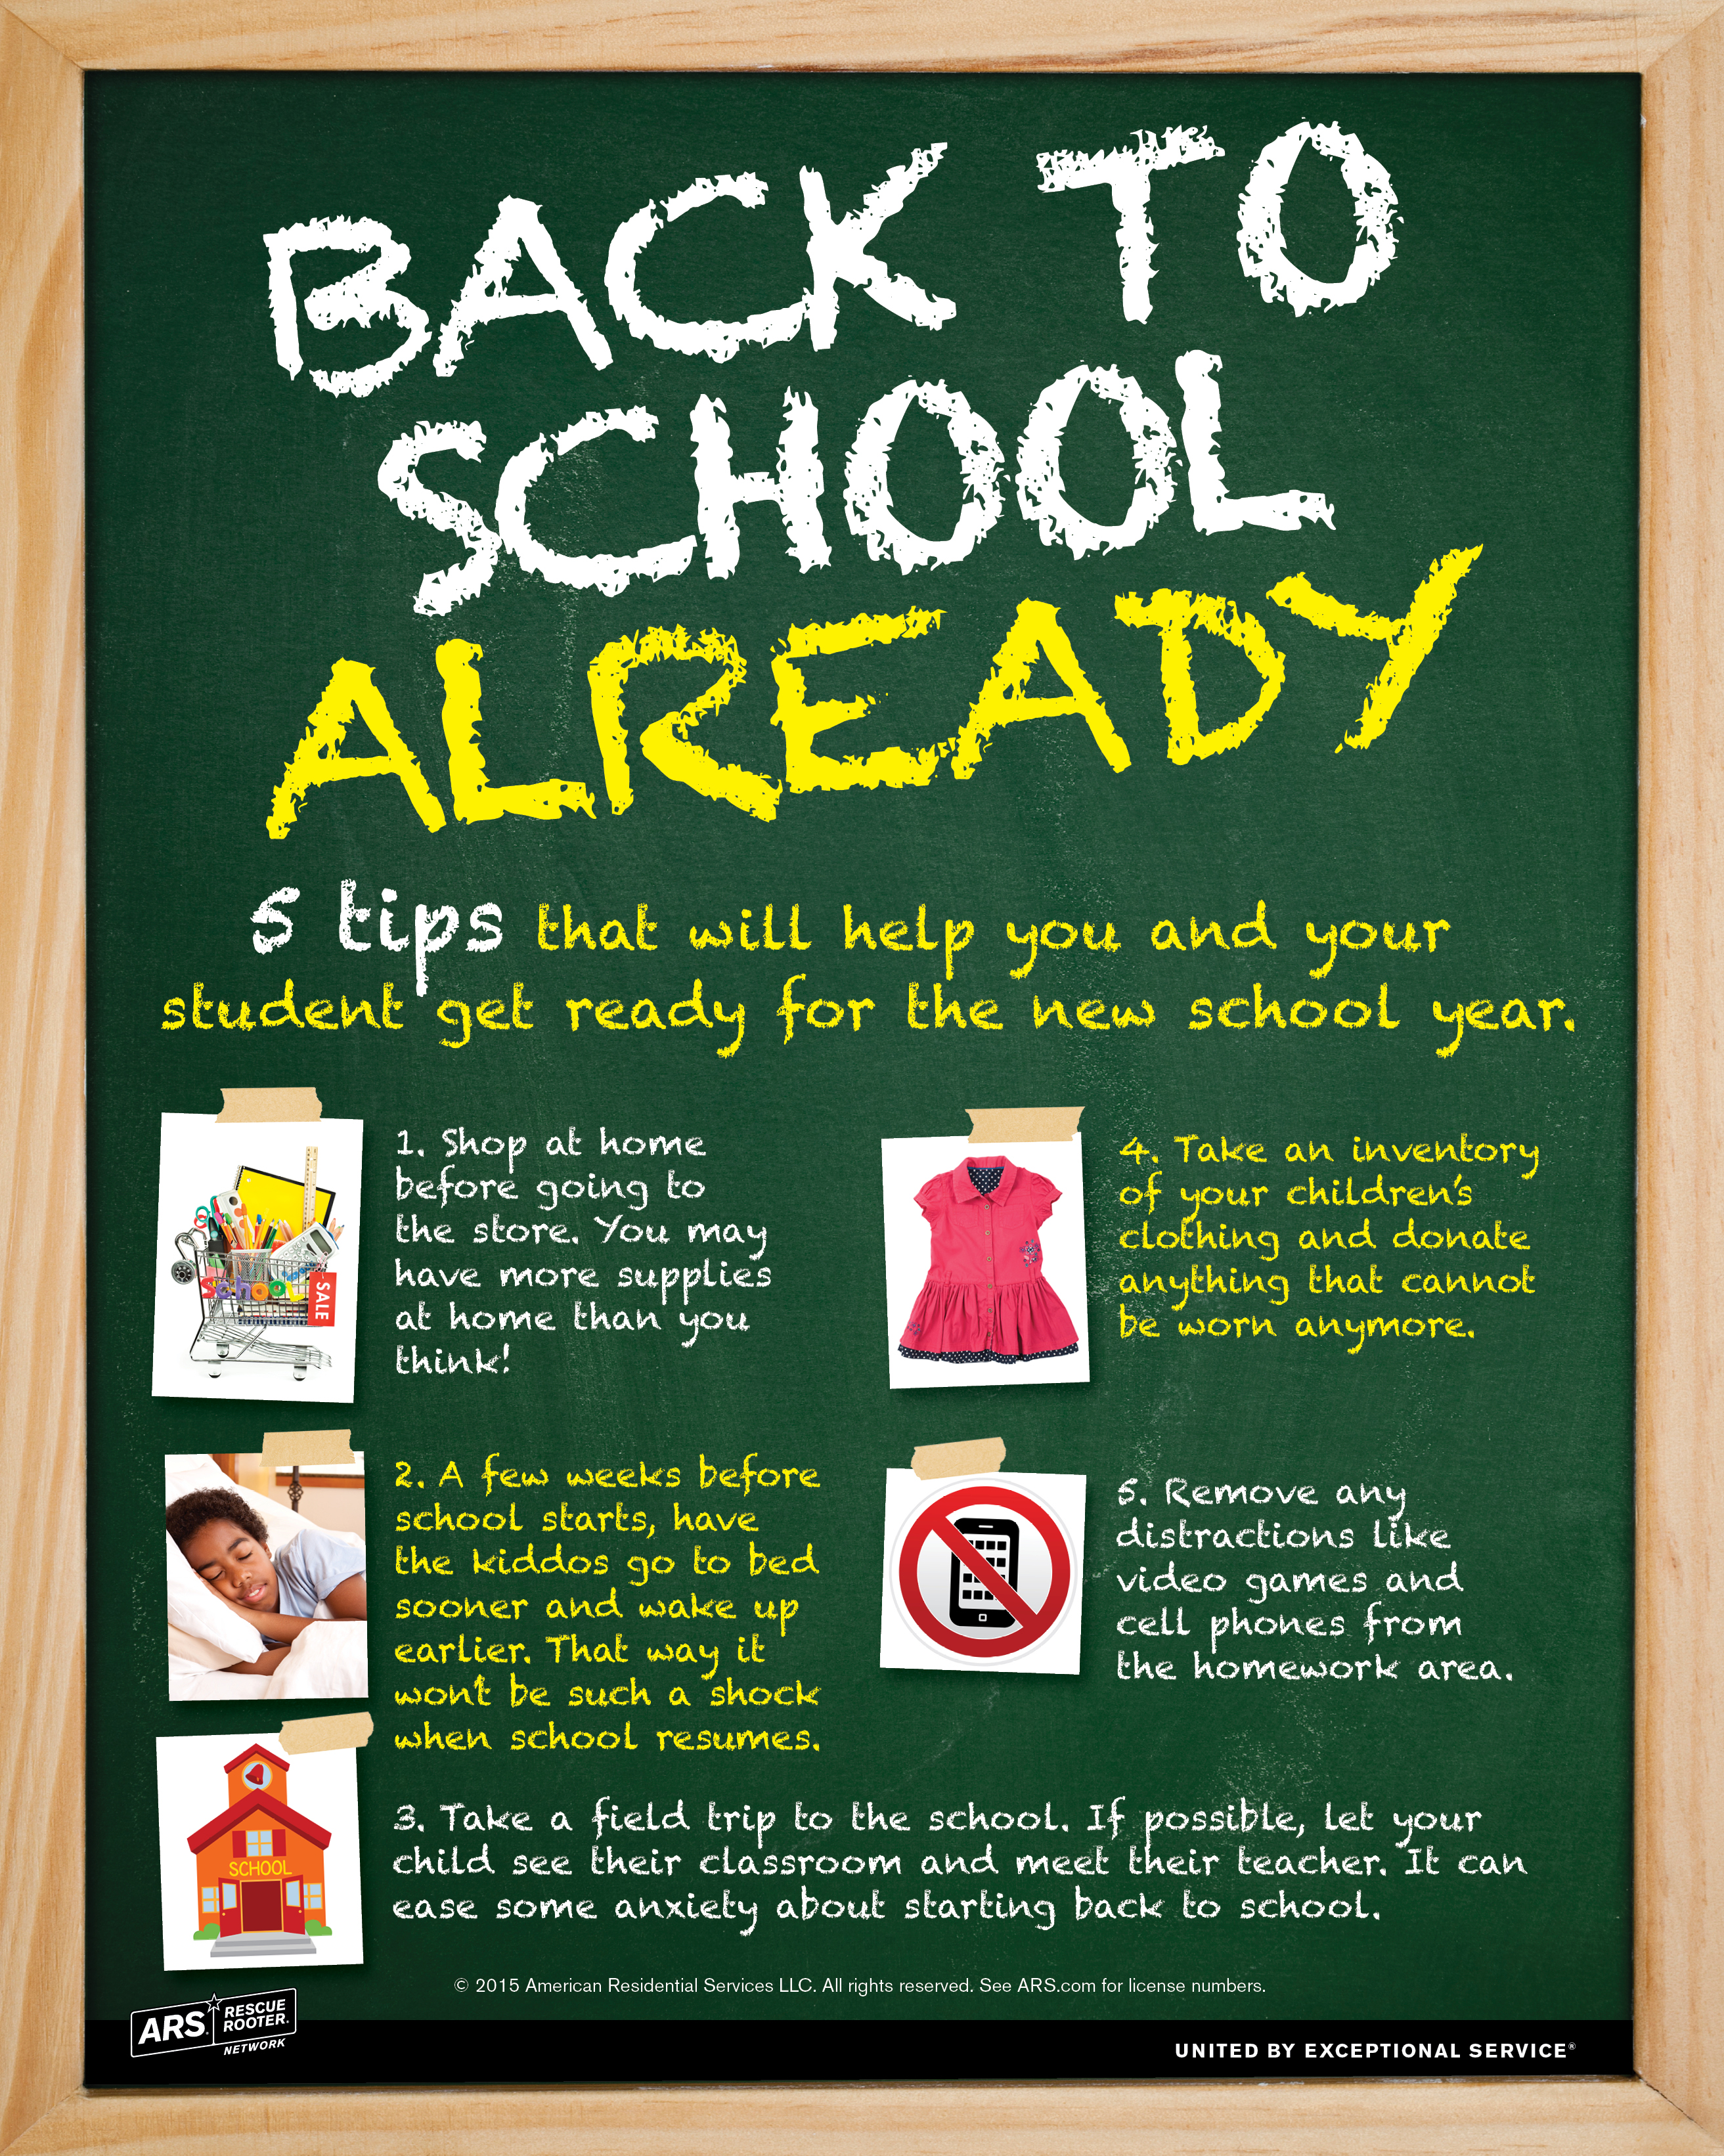 What is the best way to go to school A few tips